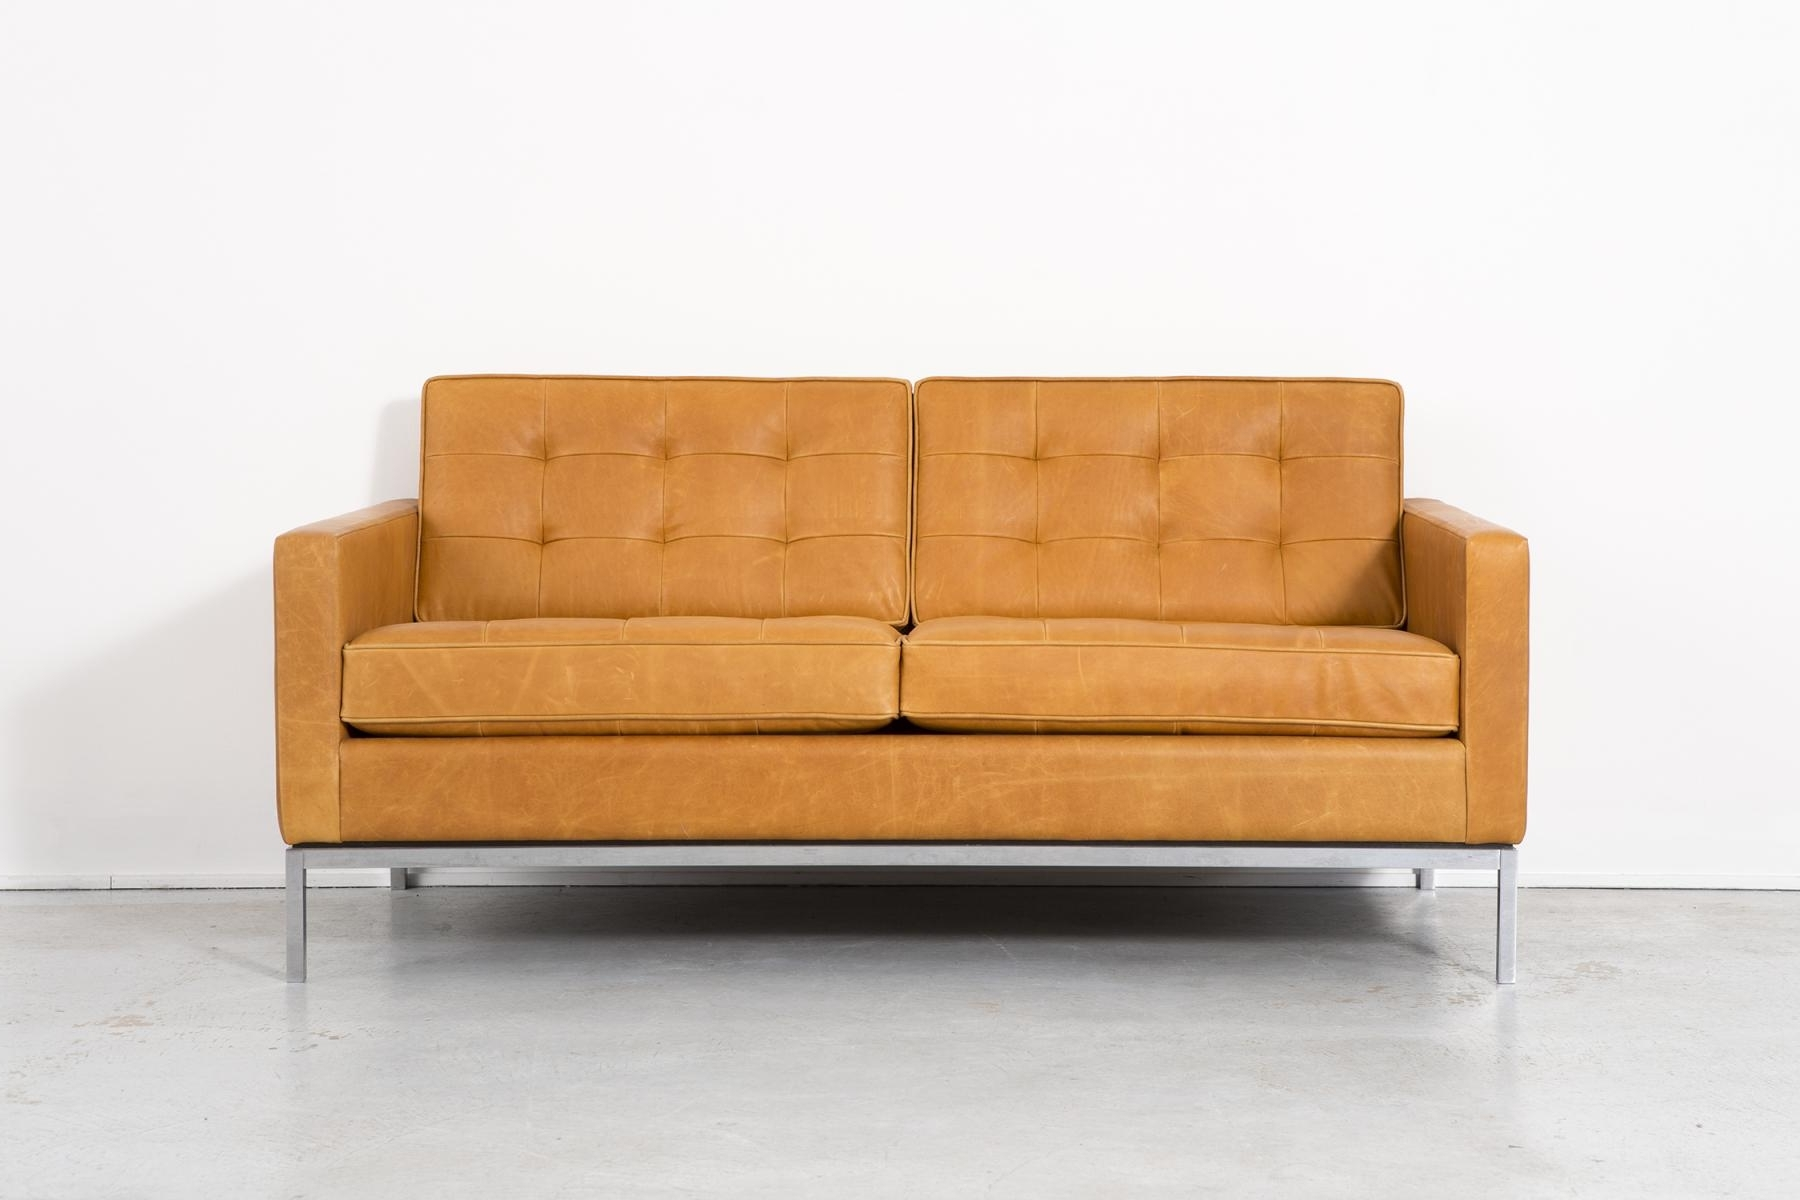 Leather Sofaflorence Knoll Bassett For Knoll, 1970S For Sale Pertaining To Best And Newest Florence Leather Sofas (View 9 of 15)